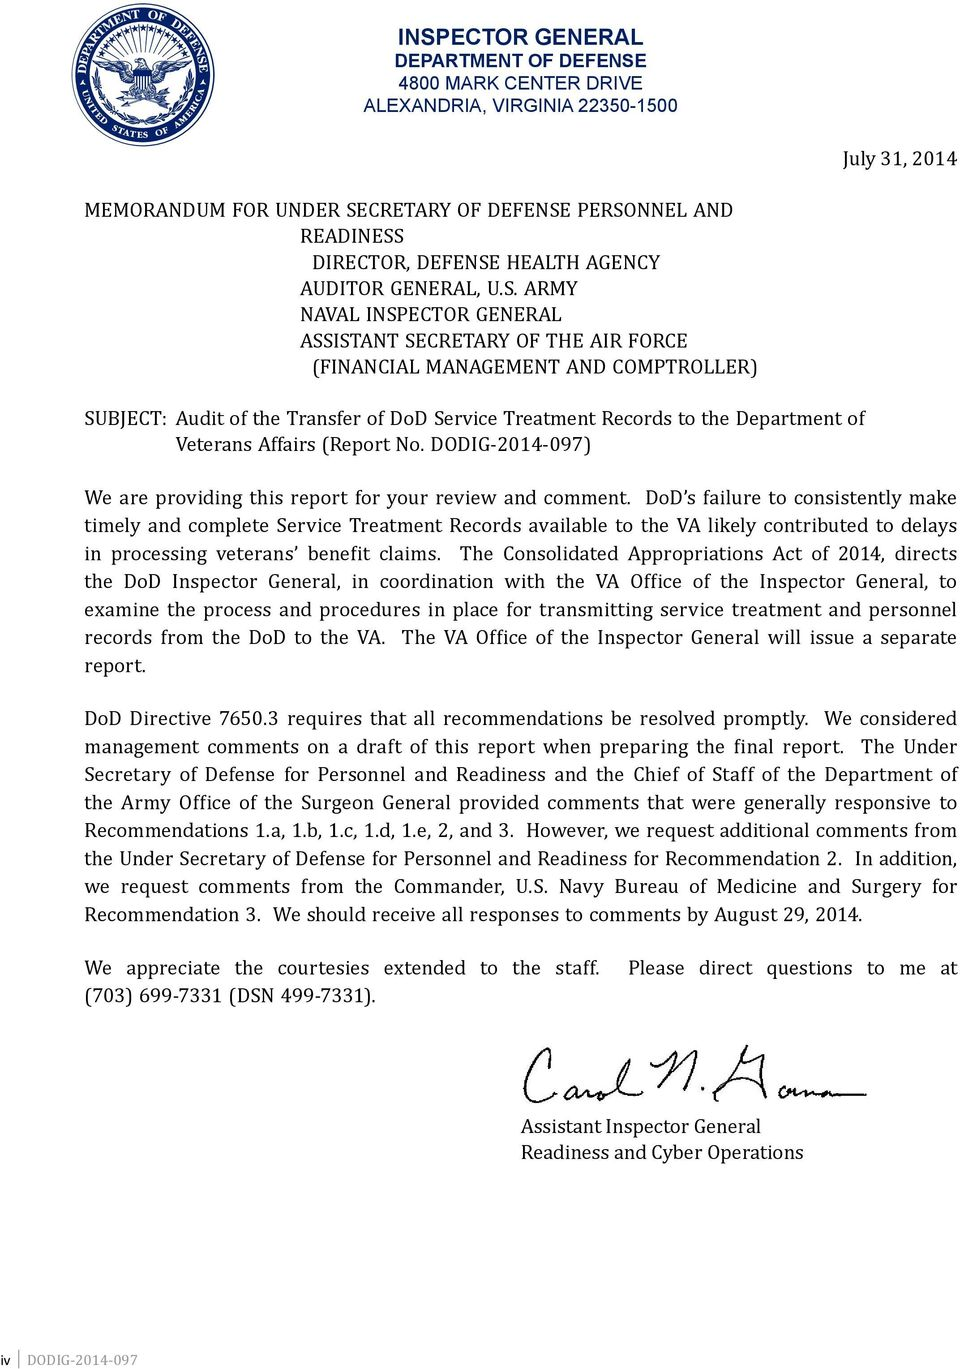 ARMY NAVAL INSPECTOR GENERAL ASSISTANT SECRETARY OF THE AIR FORCE (FINANCIAL MANAGEMENT AND COMPTROLLER) SUBJECT: Audit of the Transfer of DoD Service Treatment Records to the Department of Veterans